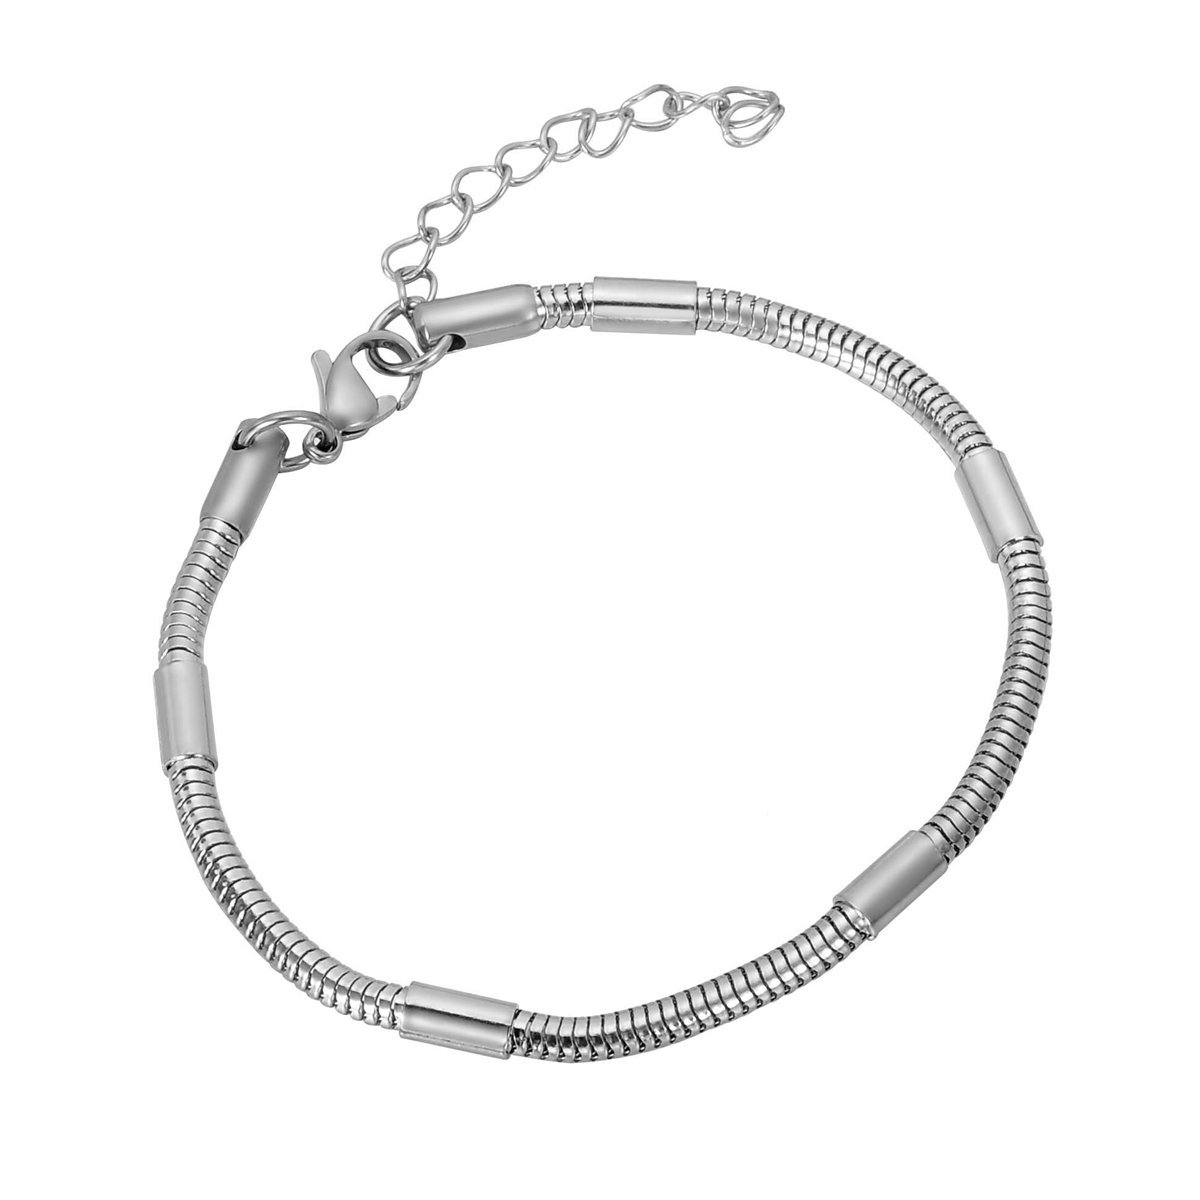 HooAMI Stainless Steel Round Snake Chain Charm Bracelet with Lobster Clasp